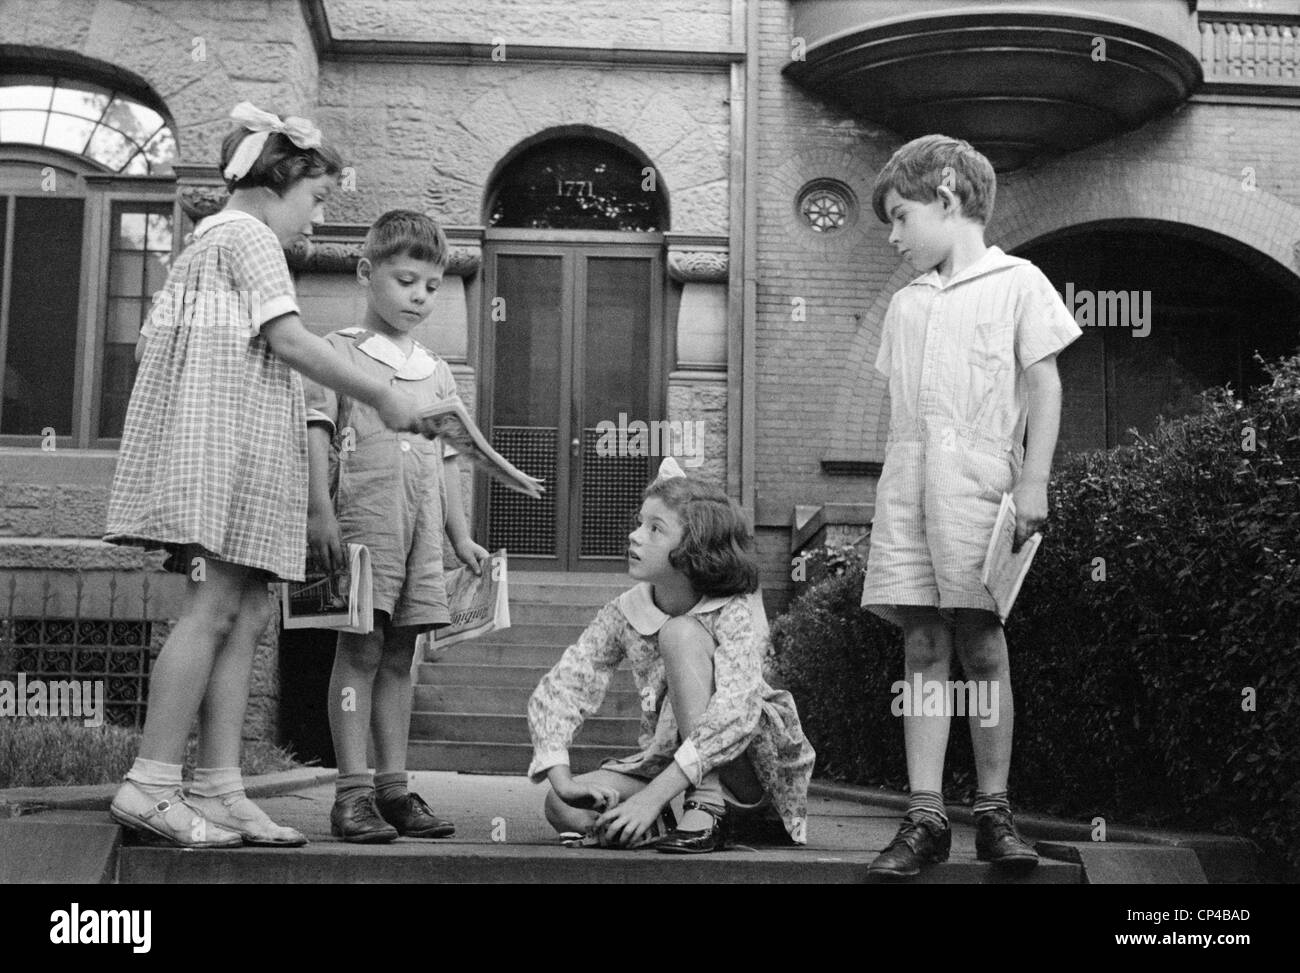 Children from prosperous families in Washington, D.C. during the Great Depression. Nov. 1935 photo by Carl Mydans. - Stock Image